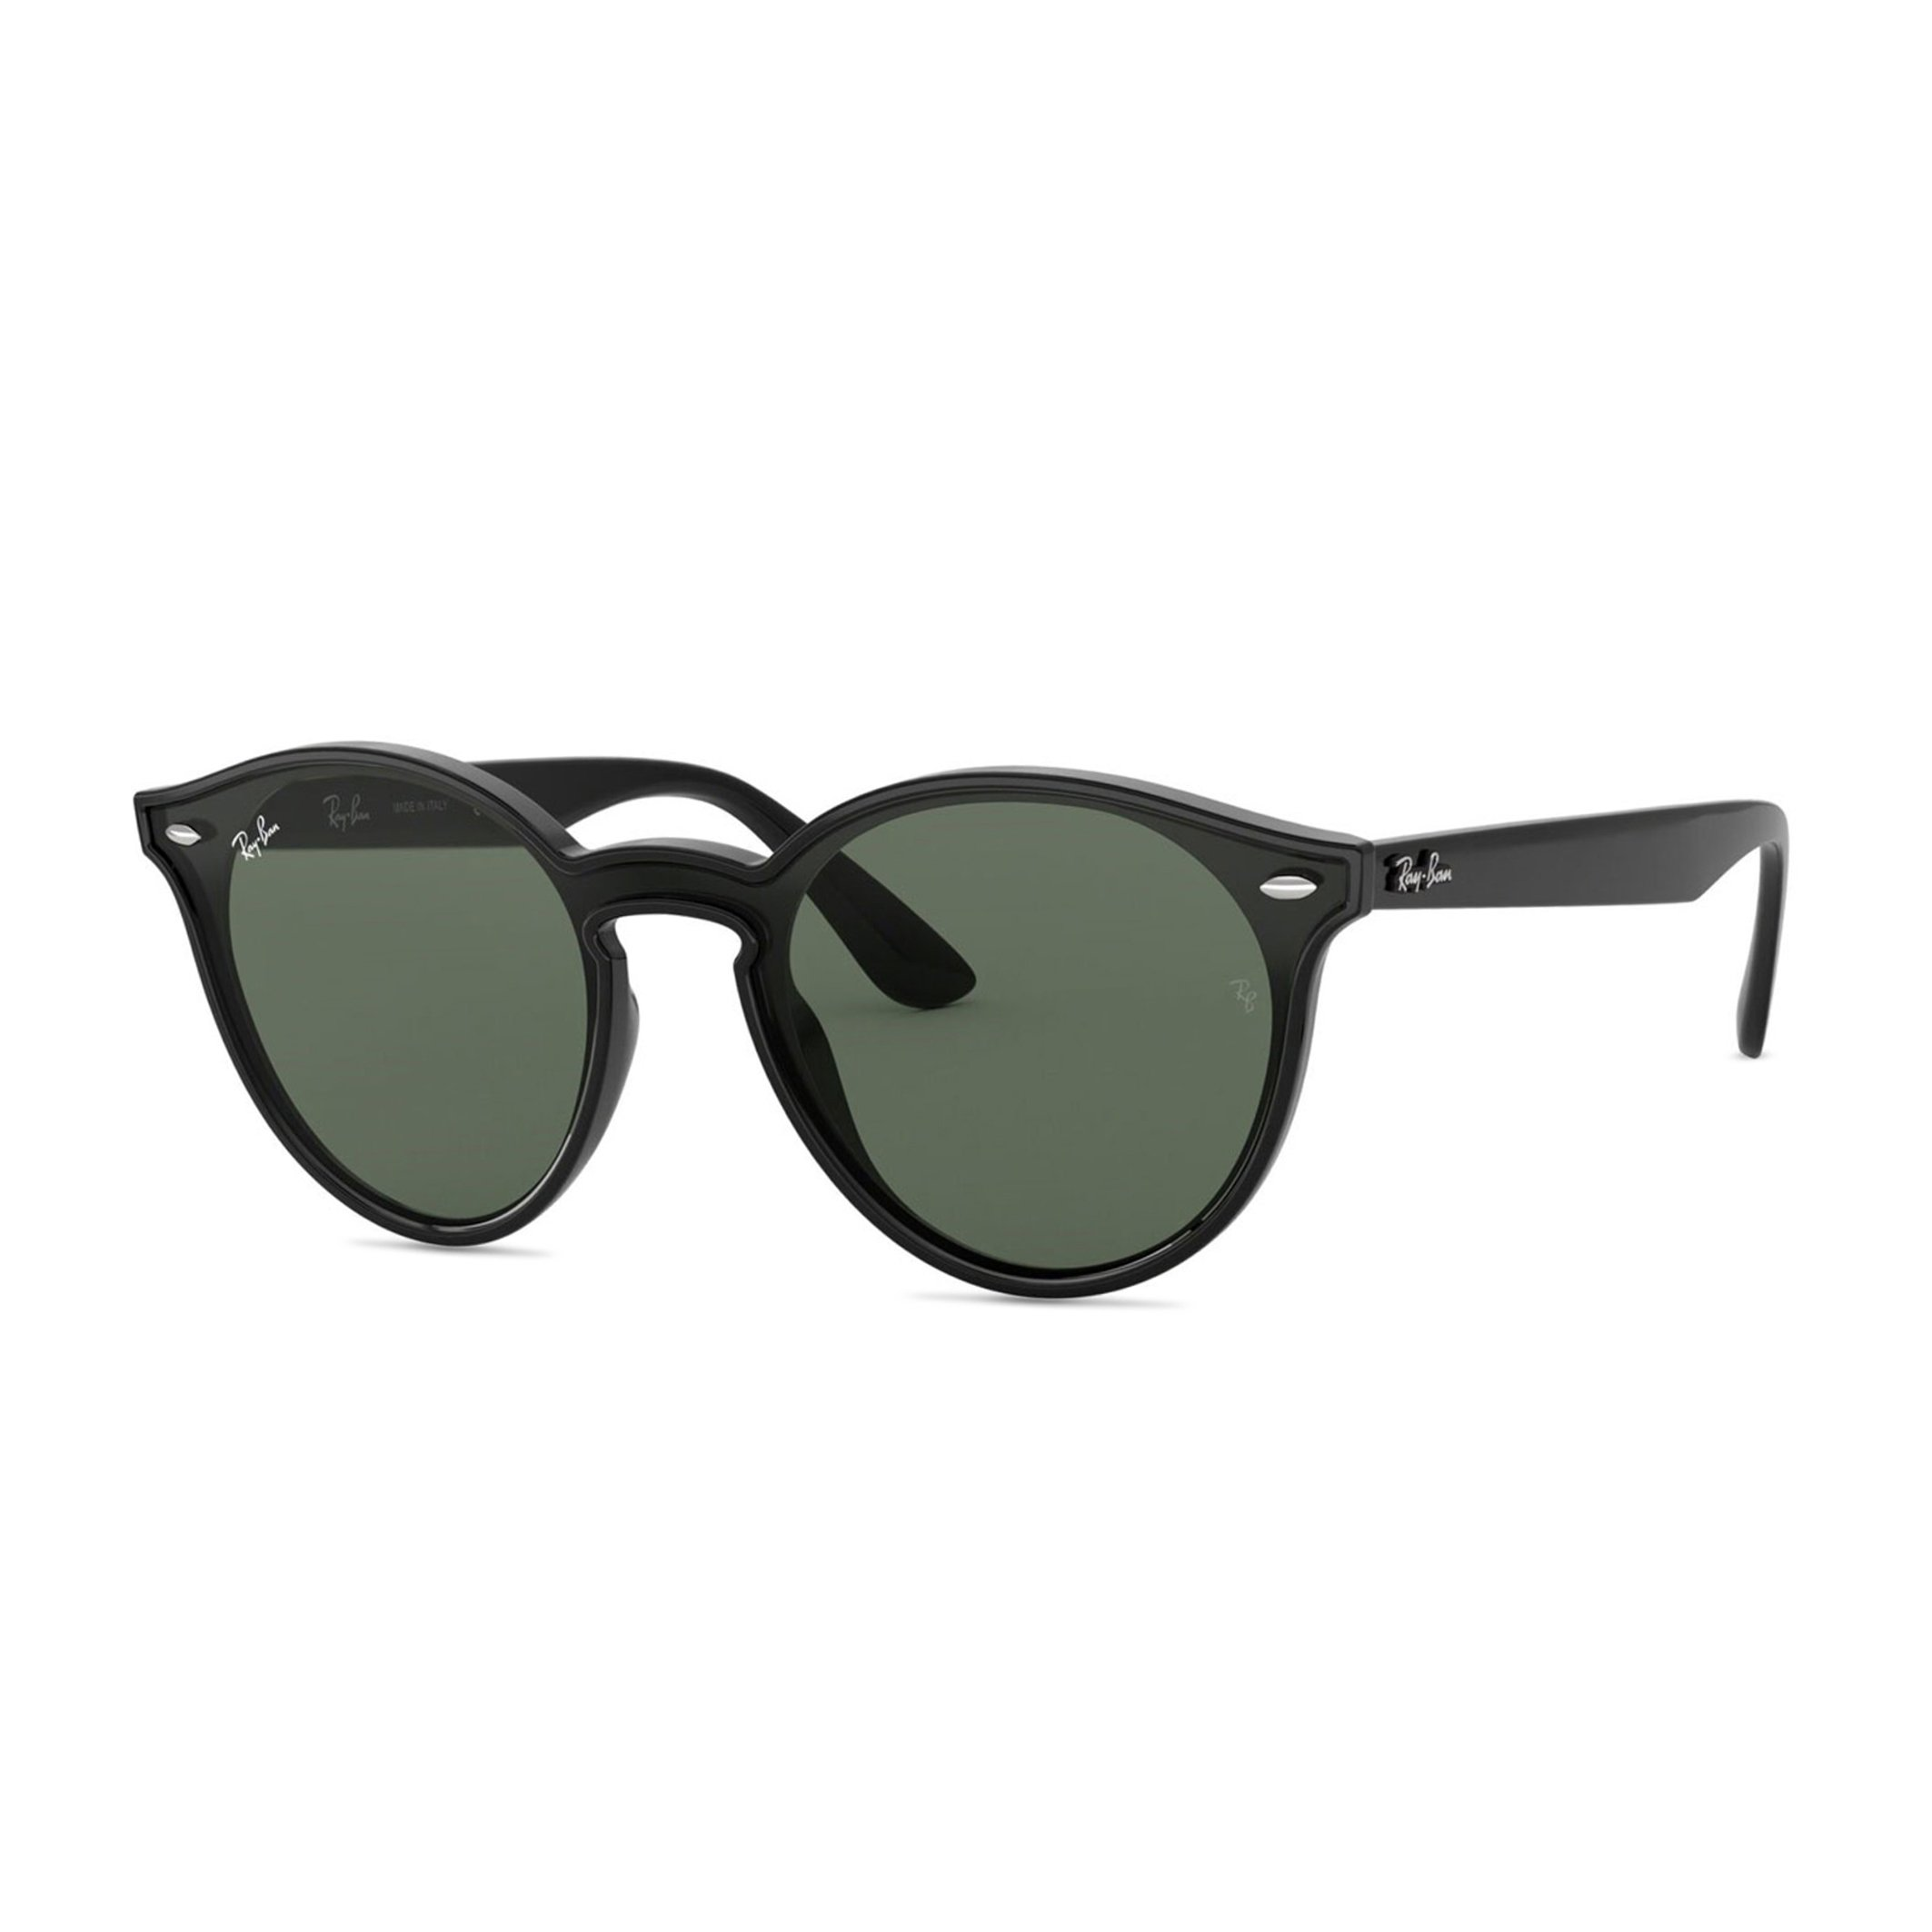 Ray-Ban Unisex Sunglasses Various Colours 0RB4380N - black NOSIZE